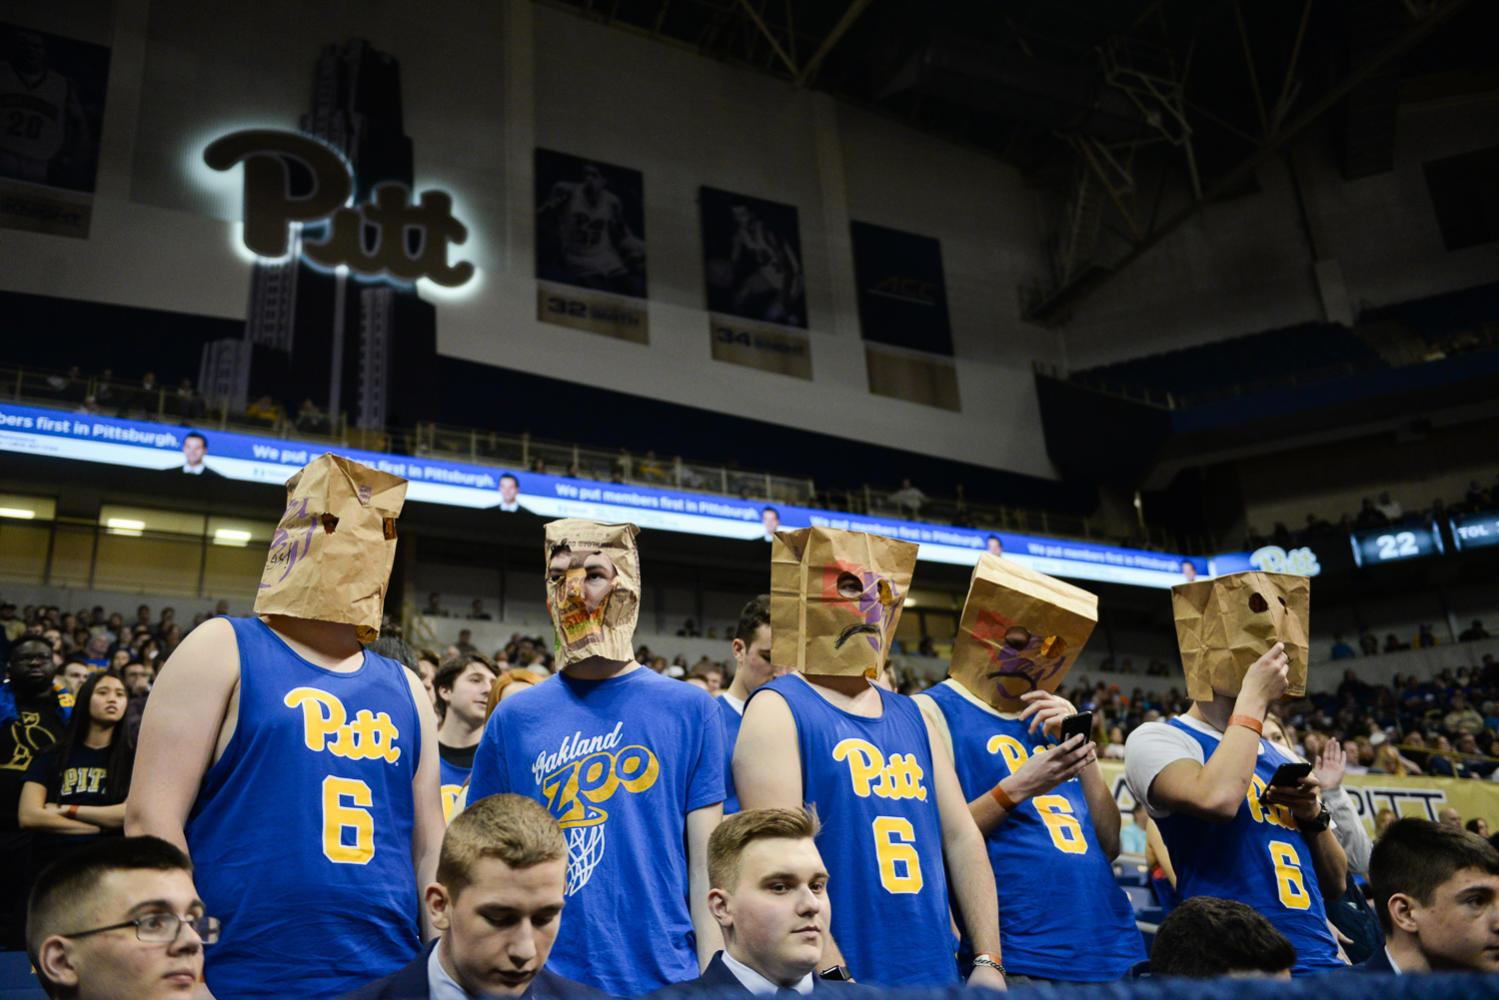 Fans wear paper bags over their head as they watch Pitt lose its 17th straight game. (Photo by John Hamilton / Managing Editor)